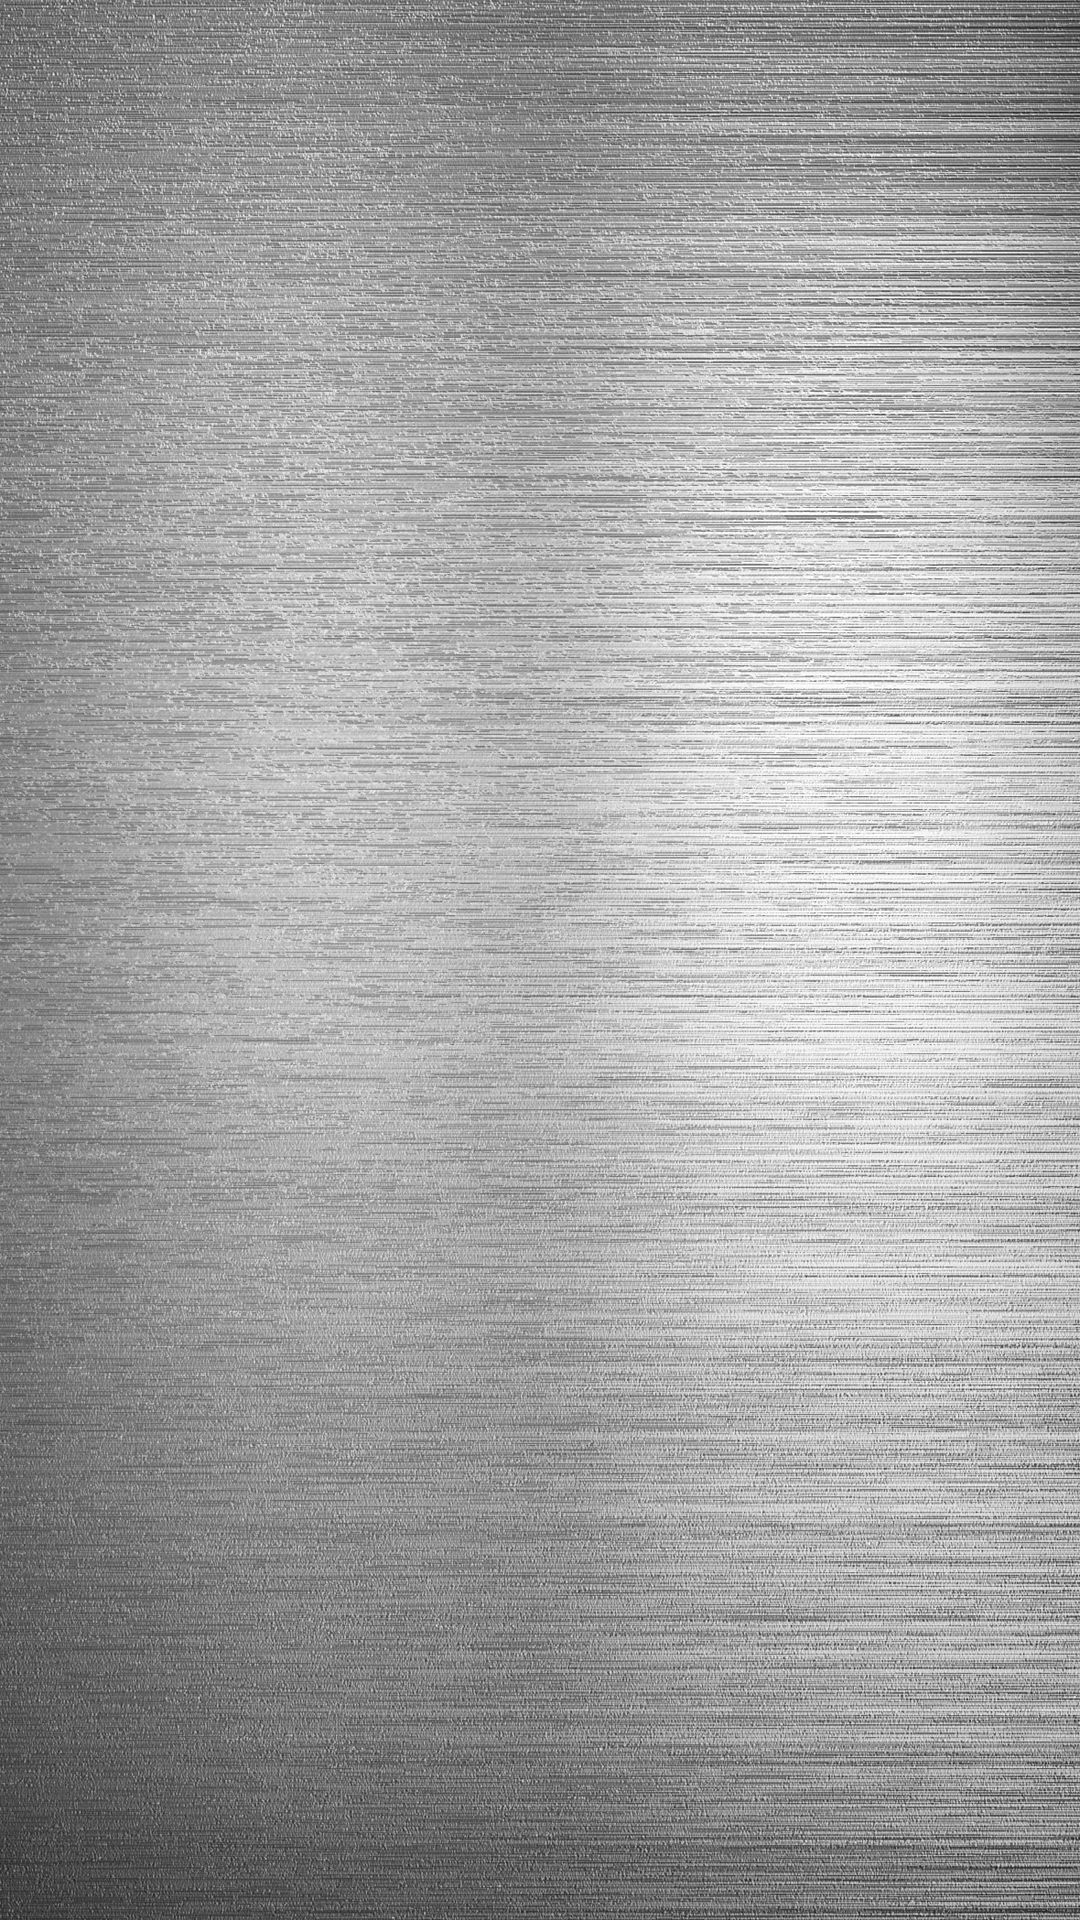 Htc One M8 Wallpaper Hd Metal Texture Htc One Wallpaper 1080x1920 Best Htc One